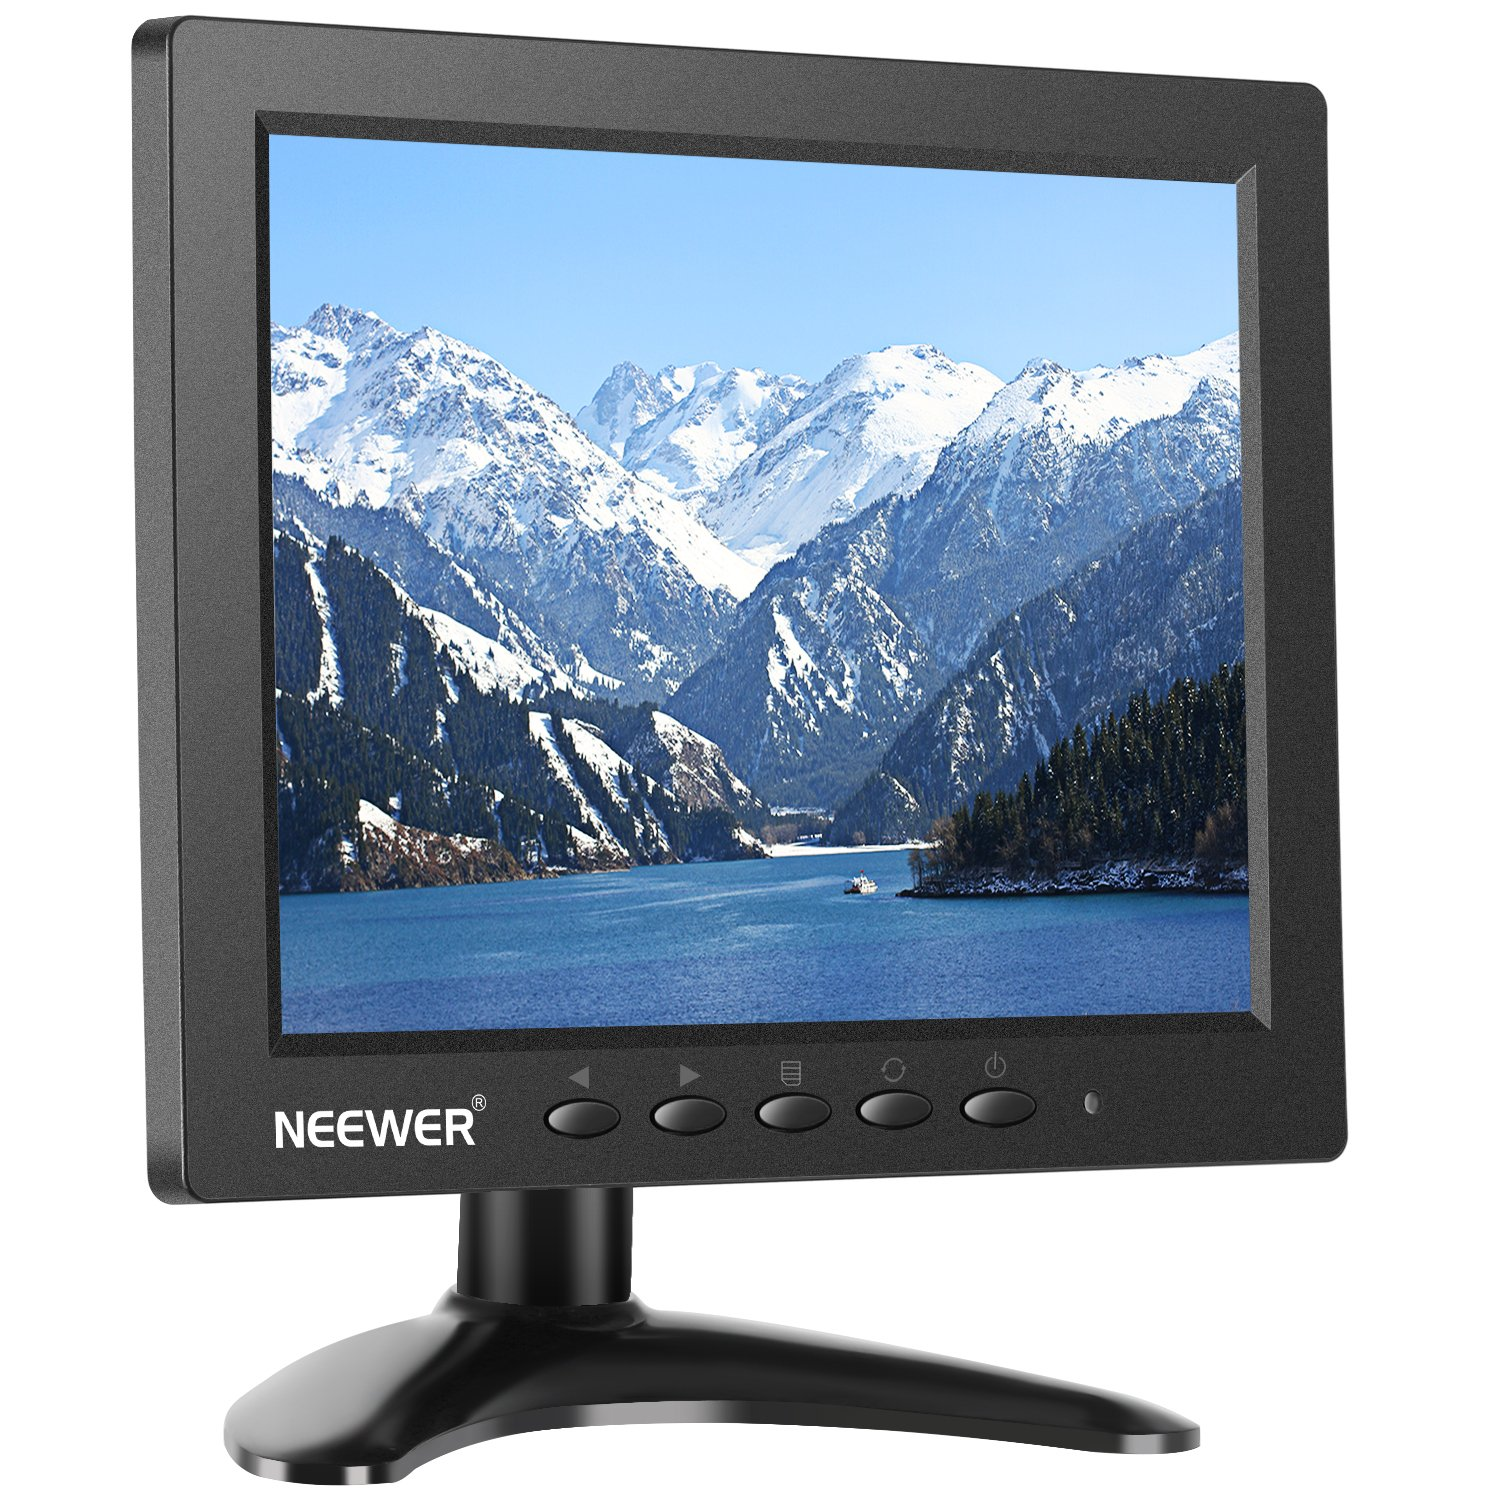 Neewer 15 inches Touch Screen LED Video Monitor,4:3 Security Surveillance Monitor Ultra-Thin Near 1080P 1024768 HD Resolution Monitor Display Screen with VGA USB HDMI Input Sensitive Touch Technology